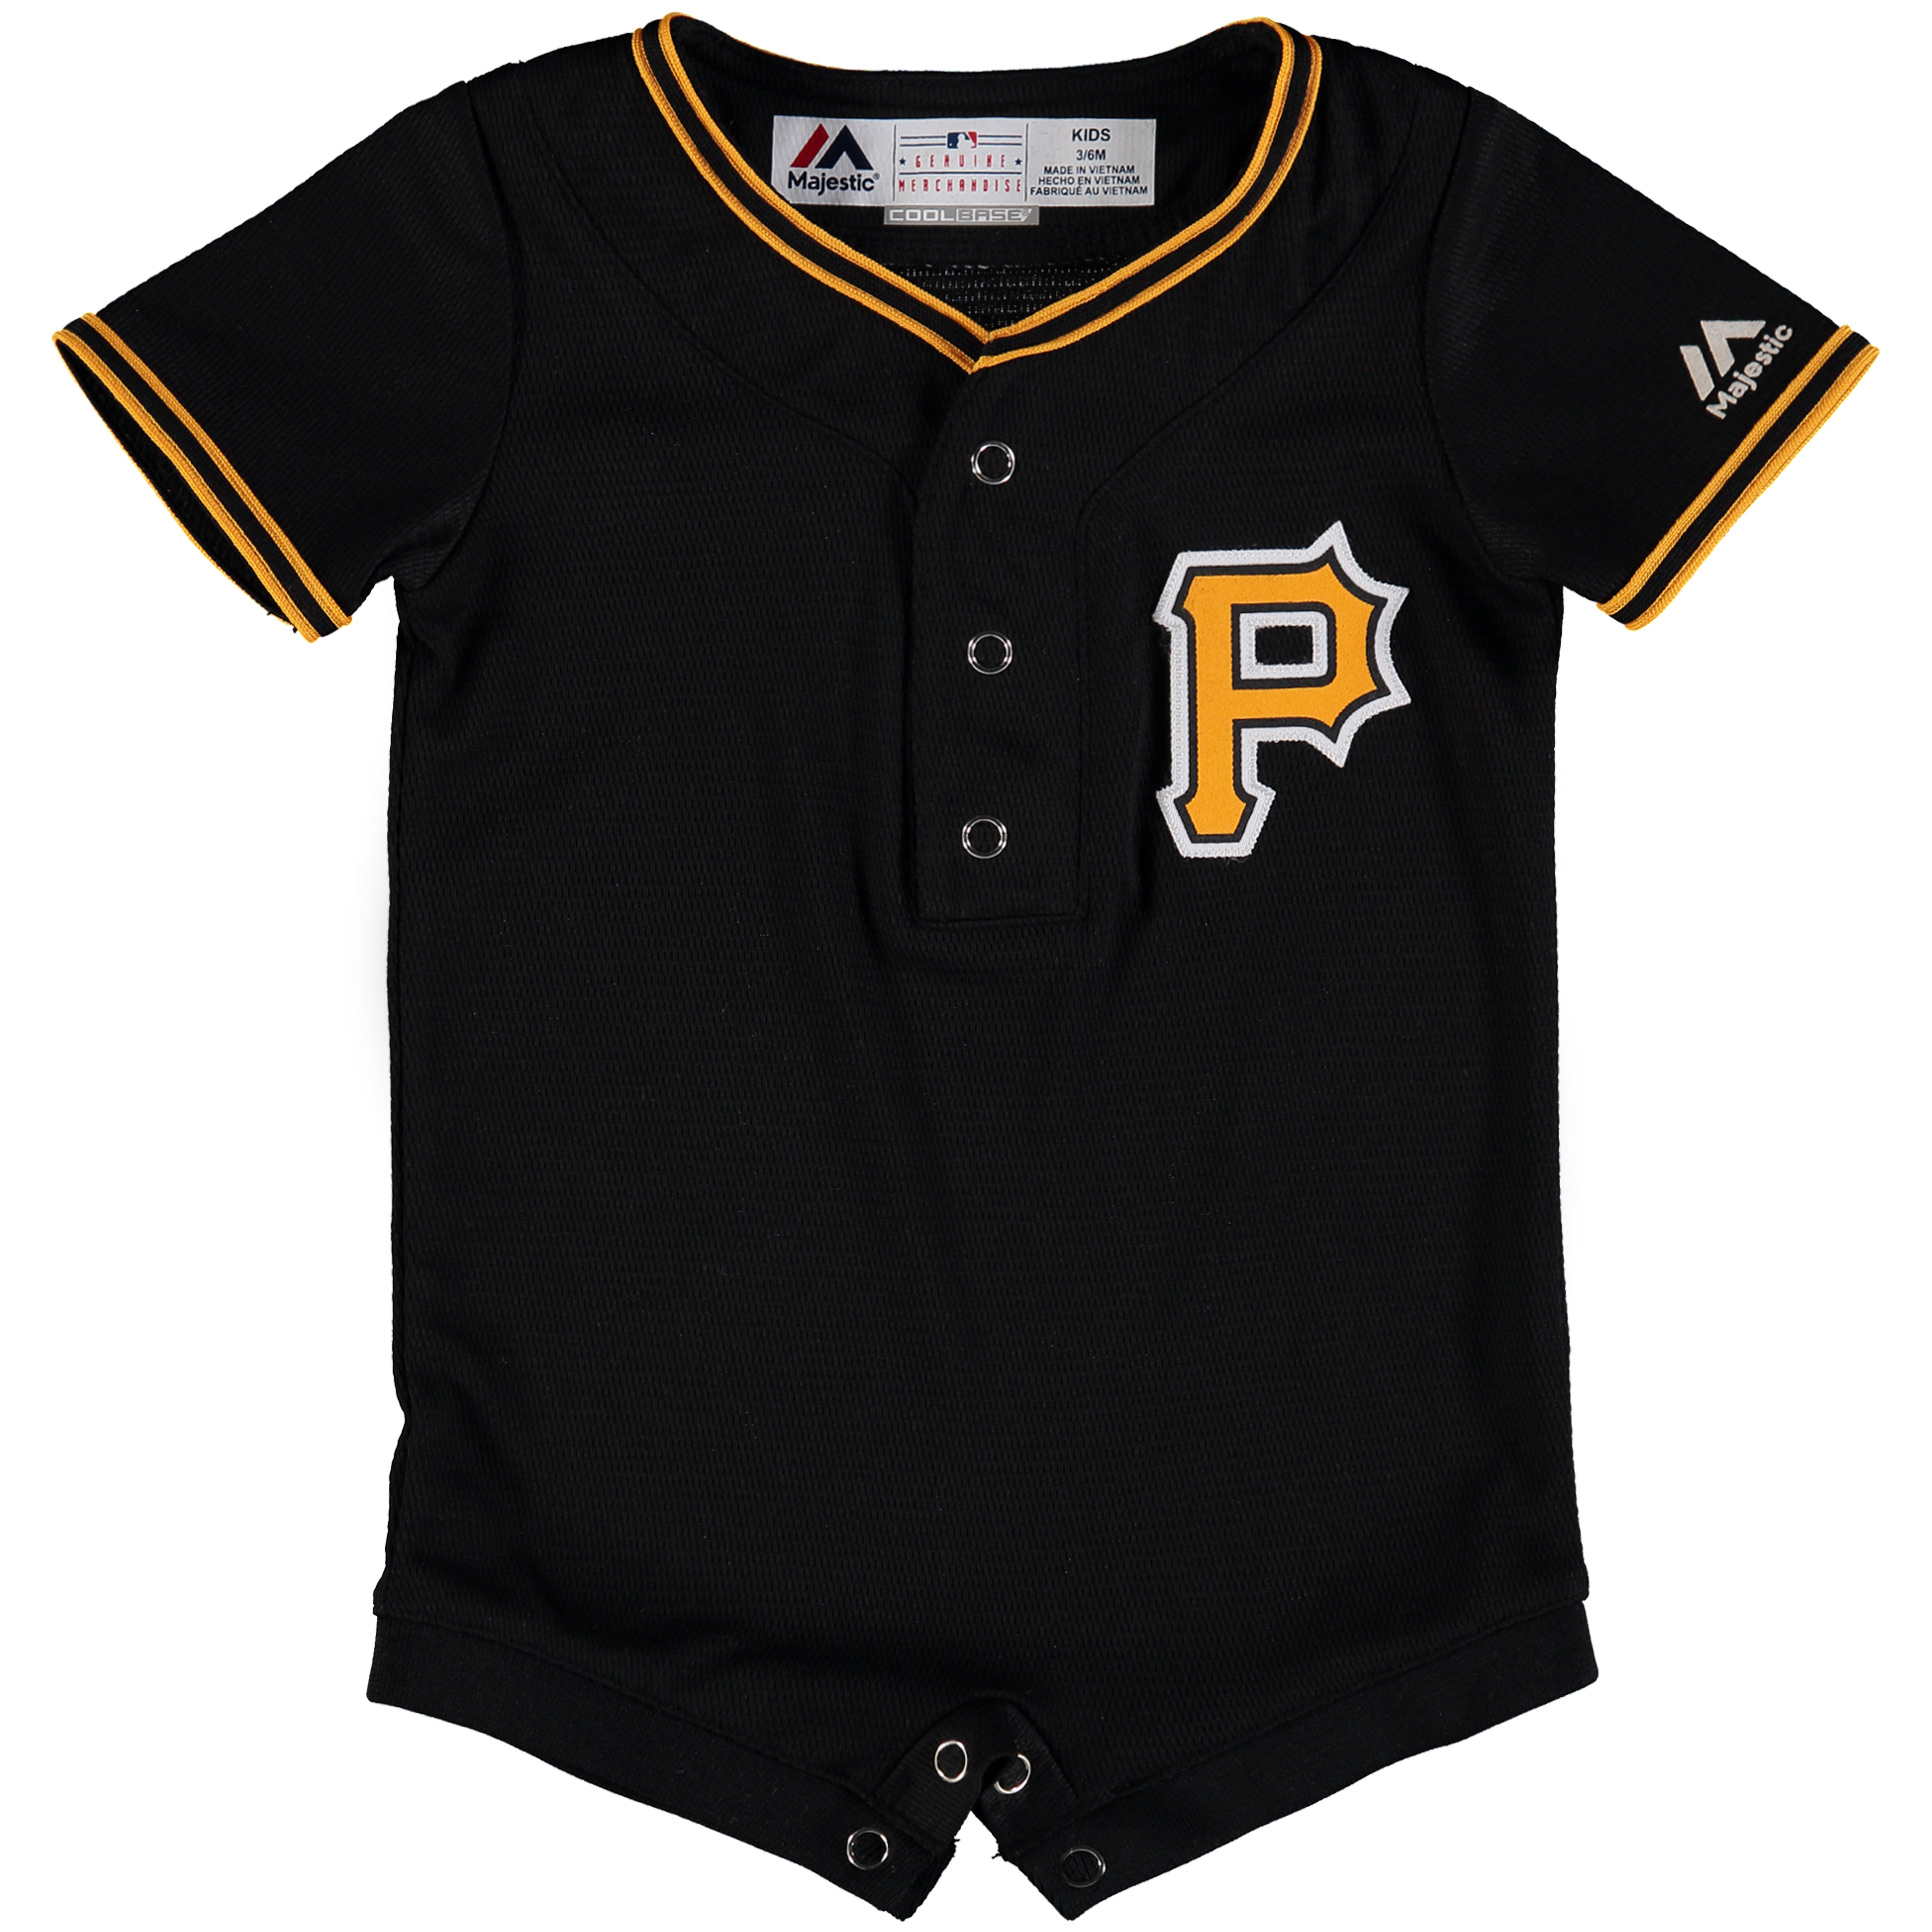 Pittsburgh Pirates Majestic Newborn & Infant Alternate Cool Base Romper Jersey - Black